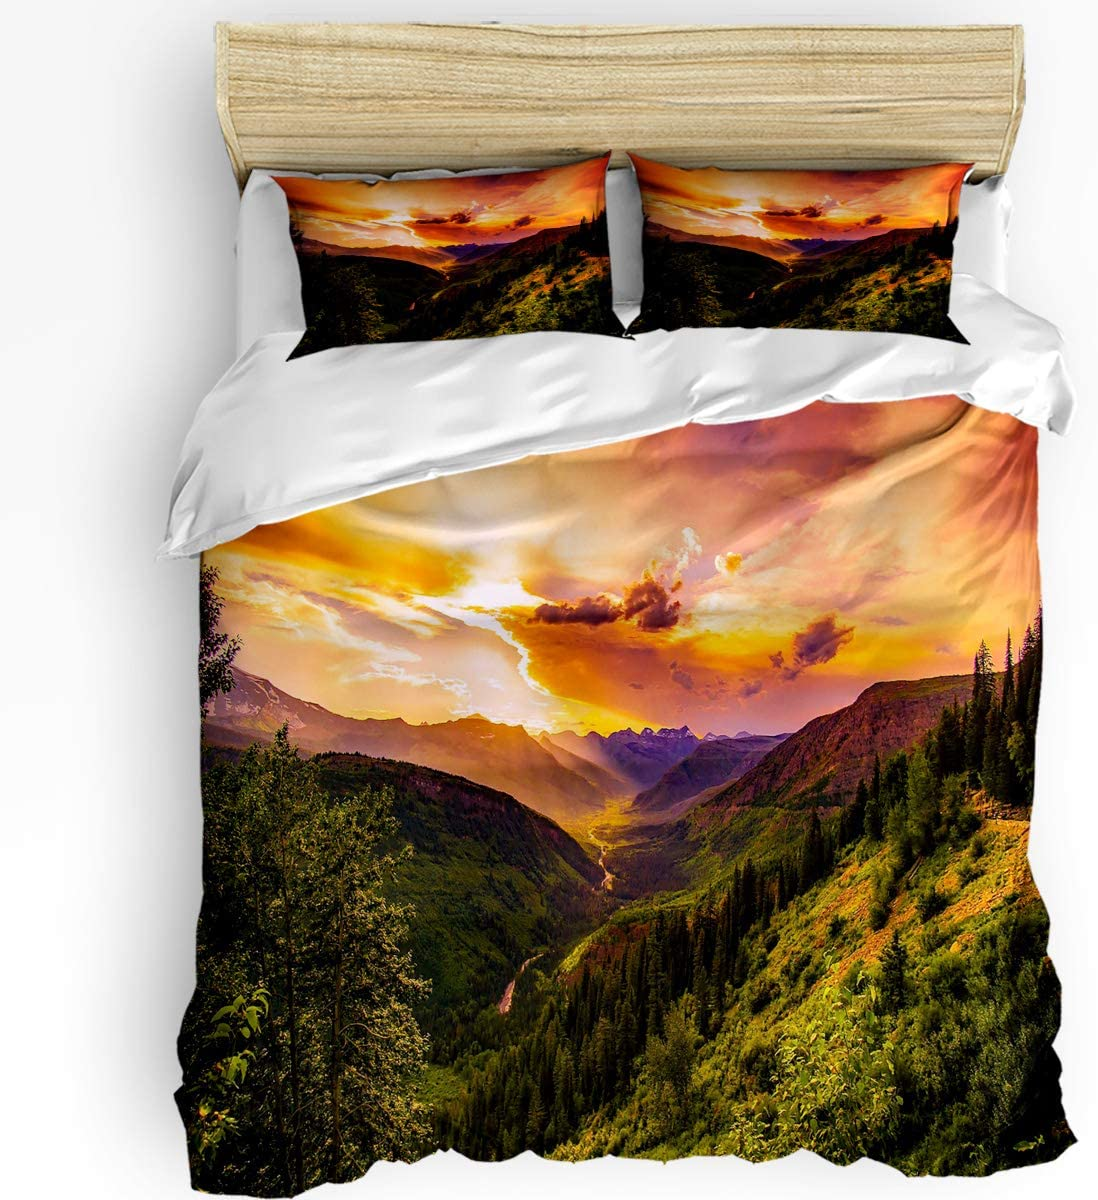 Queen Area 3 Pcs Twin Duvet Cover Set - Nature Sunrise and Mountain Valley River Scenic Picture Patterned Soft Breathable Bedding Set with Zipper Closure and 2 Pillow Shams (Not Including Comforter)